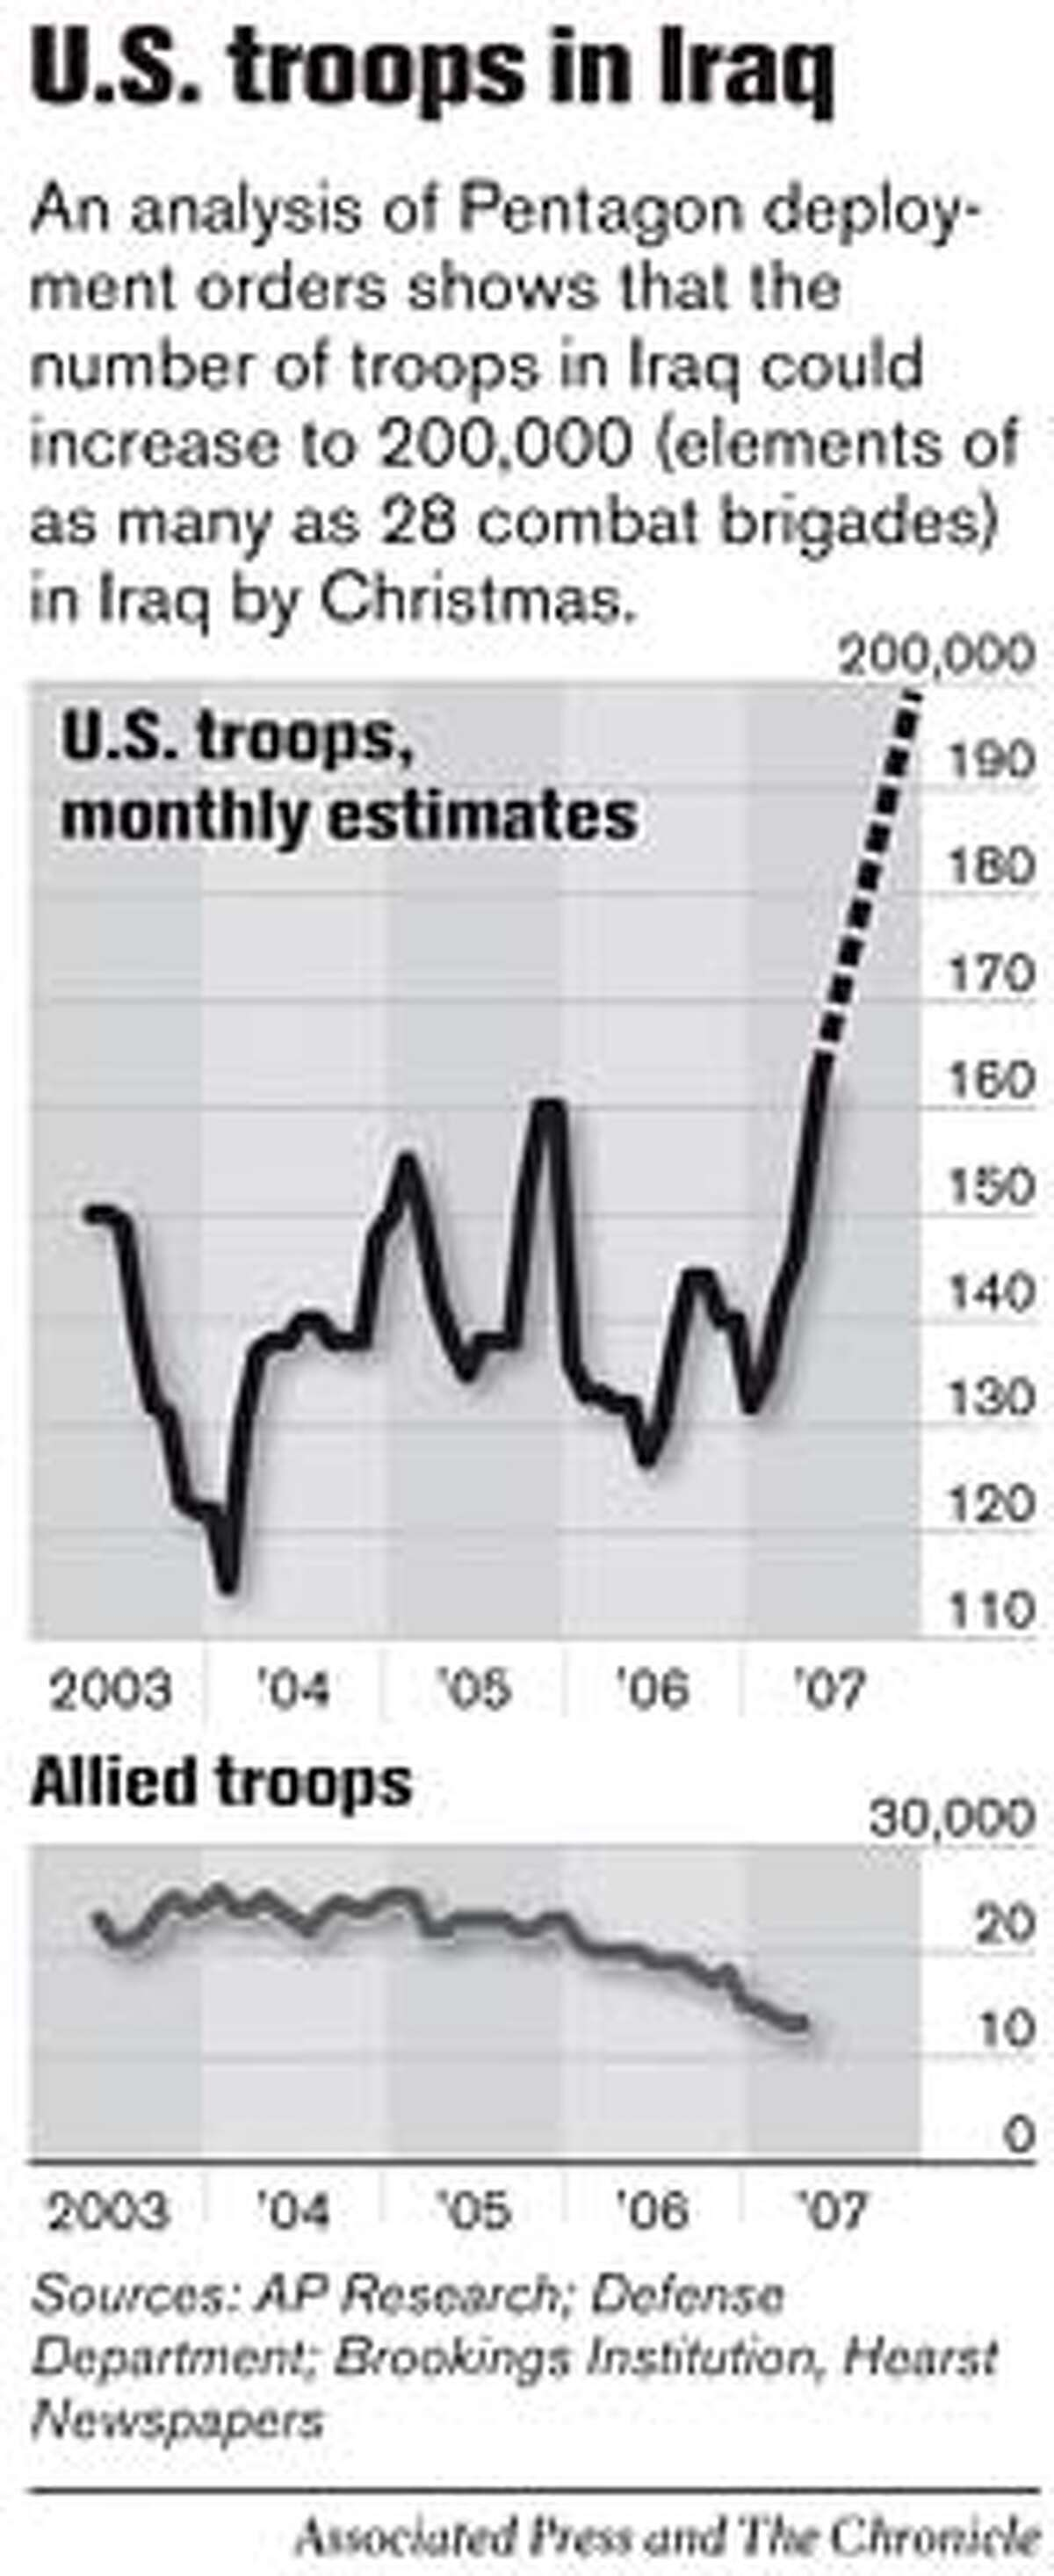 U.S. Troops in Iraq. Associated Press and Chronicle Graphic